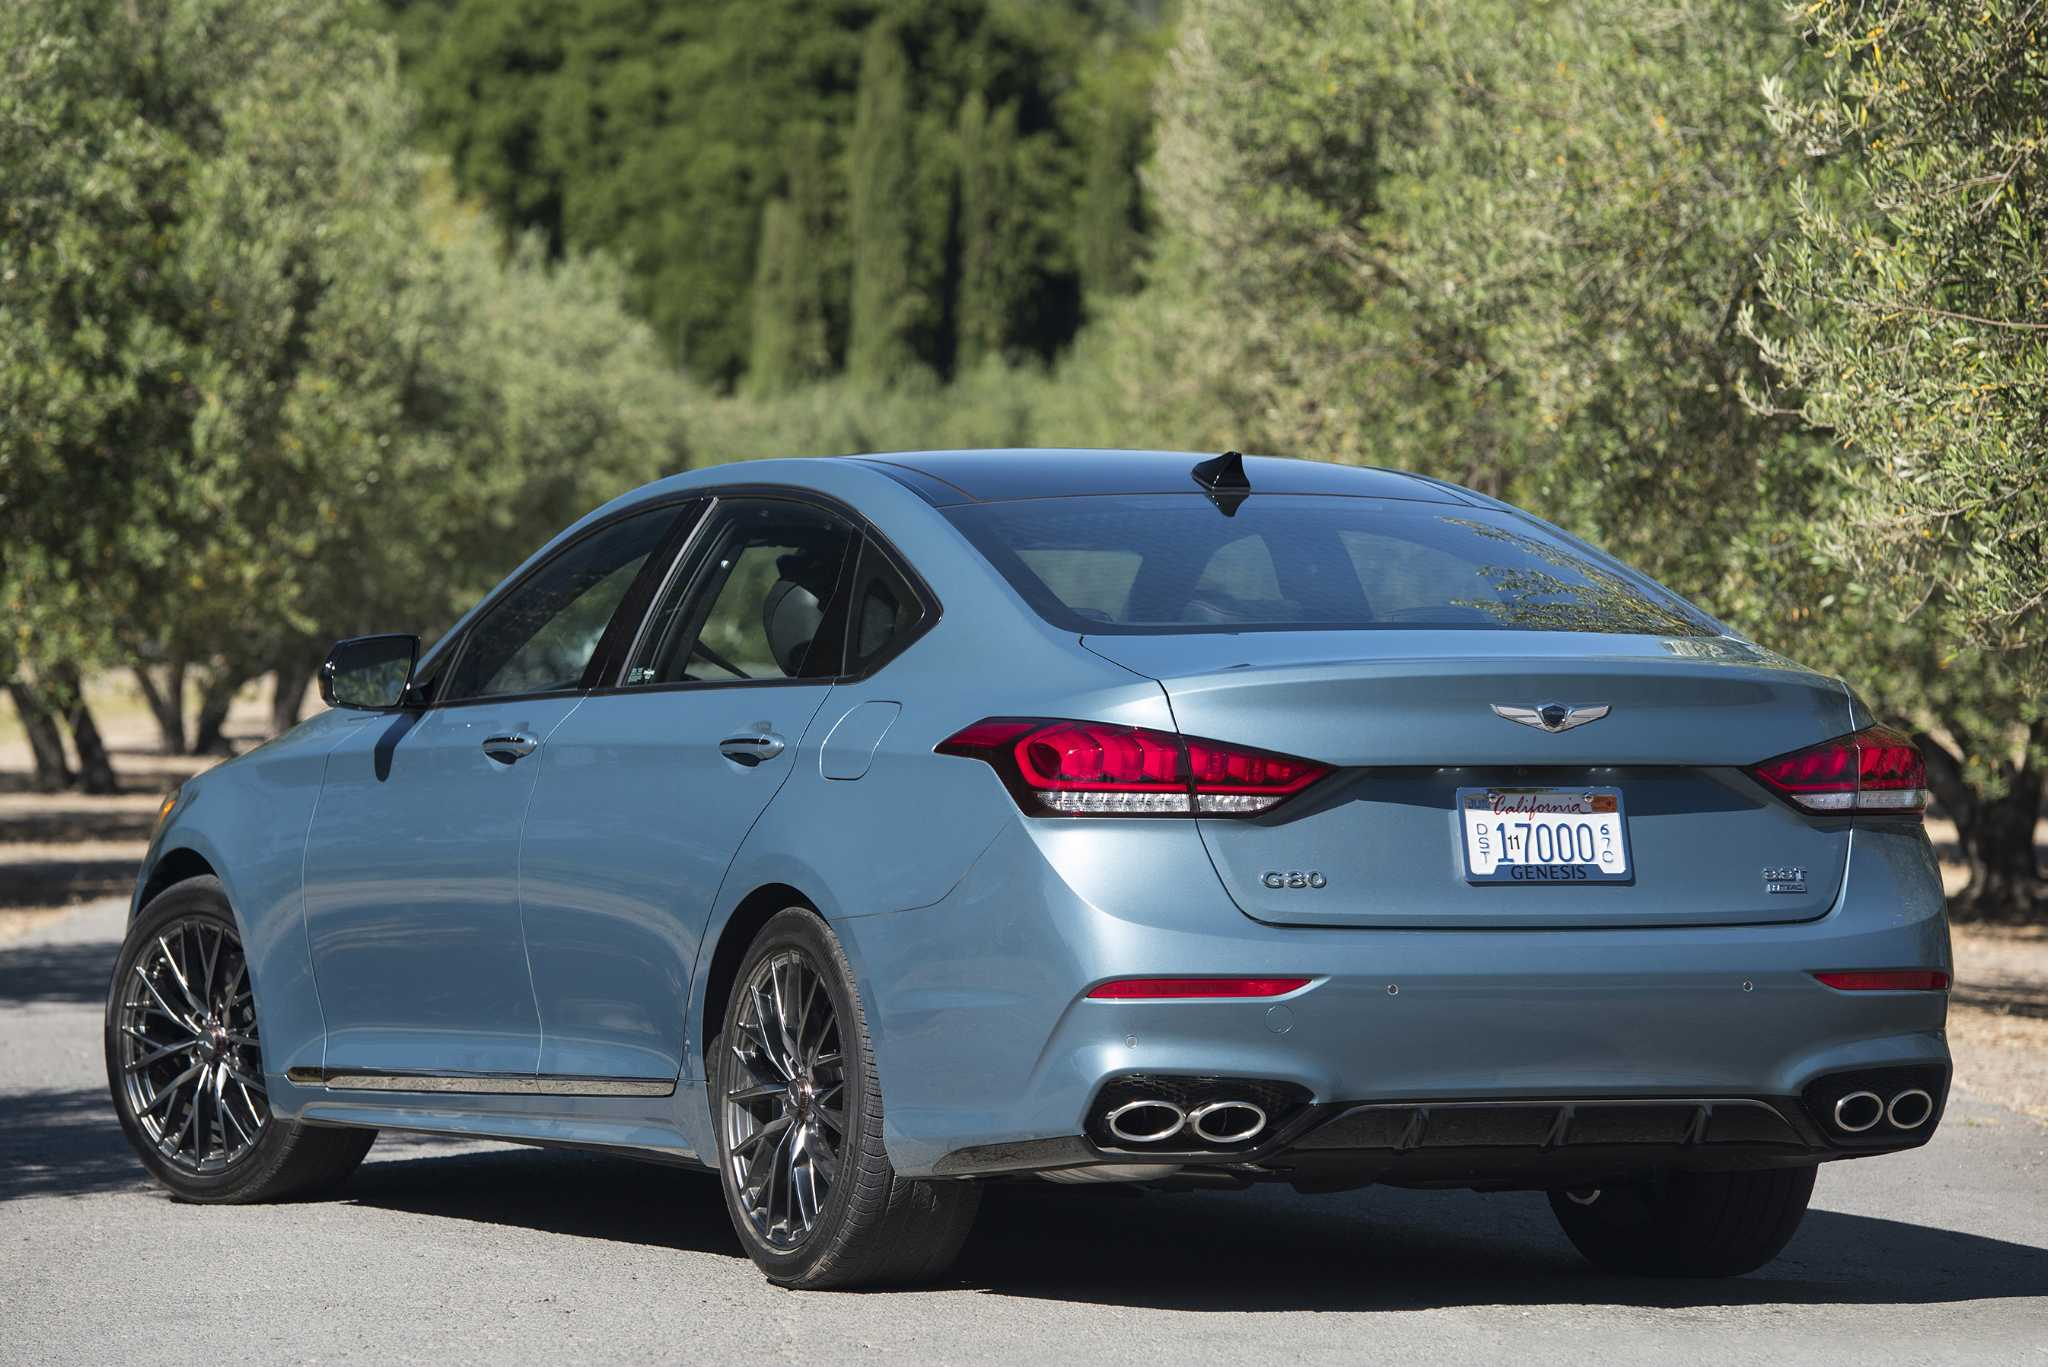 Genesis ramps up G80 sedan line with all-new Sport model for 2018